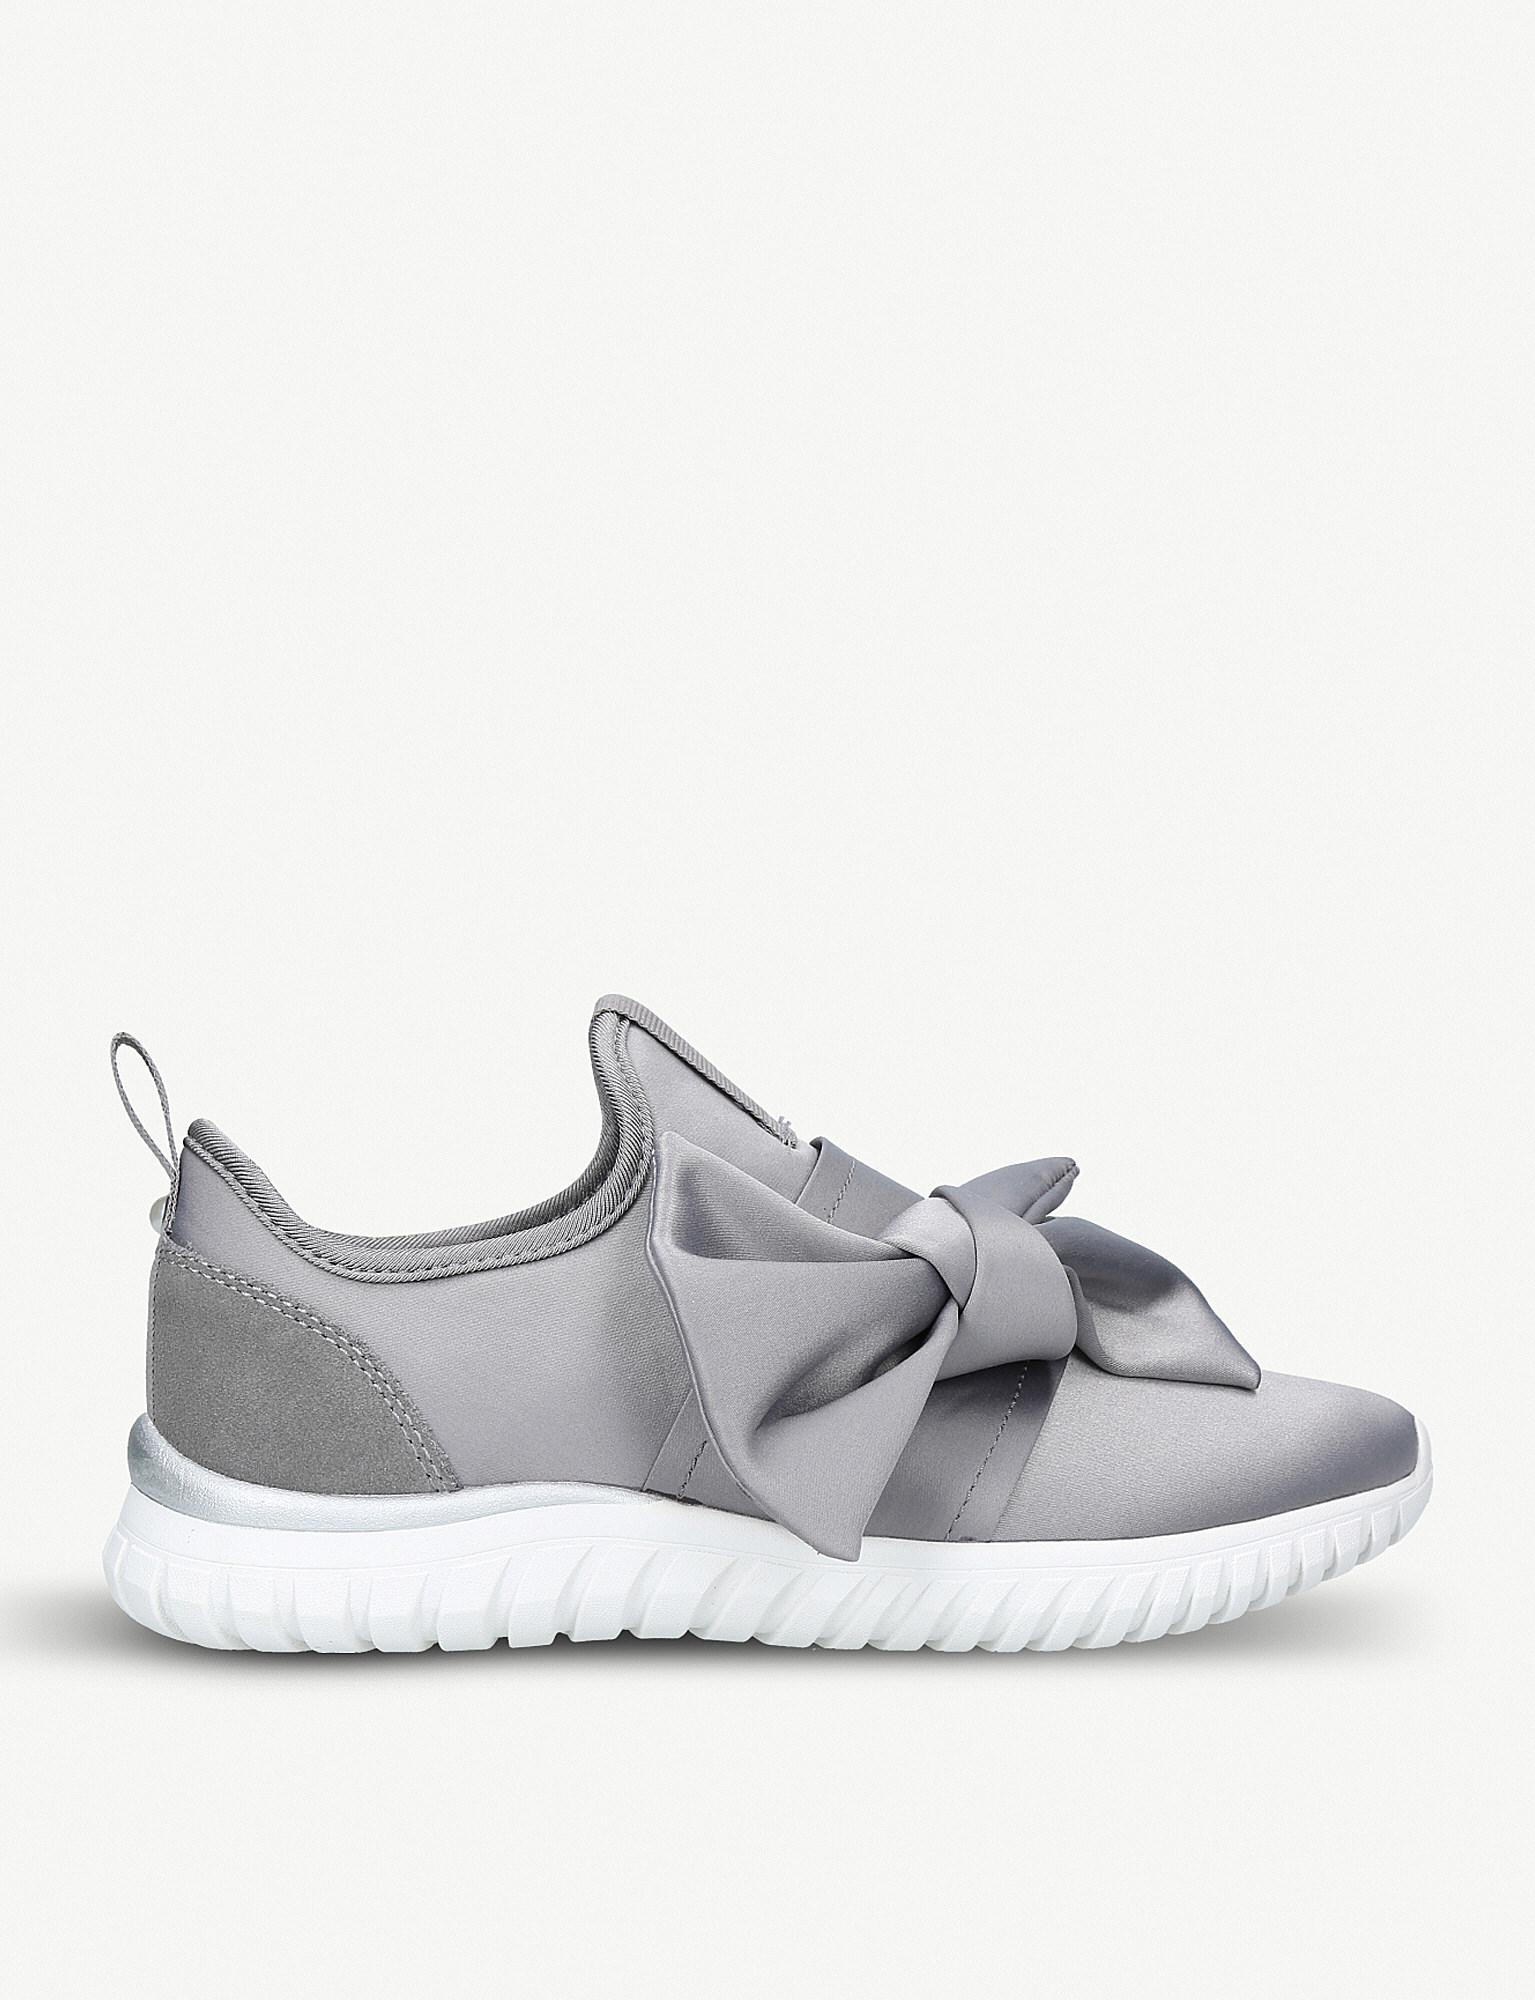 Miss KG Satin Bow Sneakers discount sale online buy cheap best seller cheap price cost buy cheap wholesale price CW67R